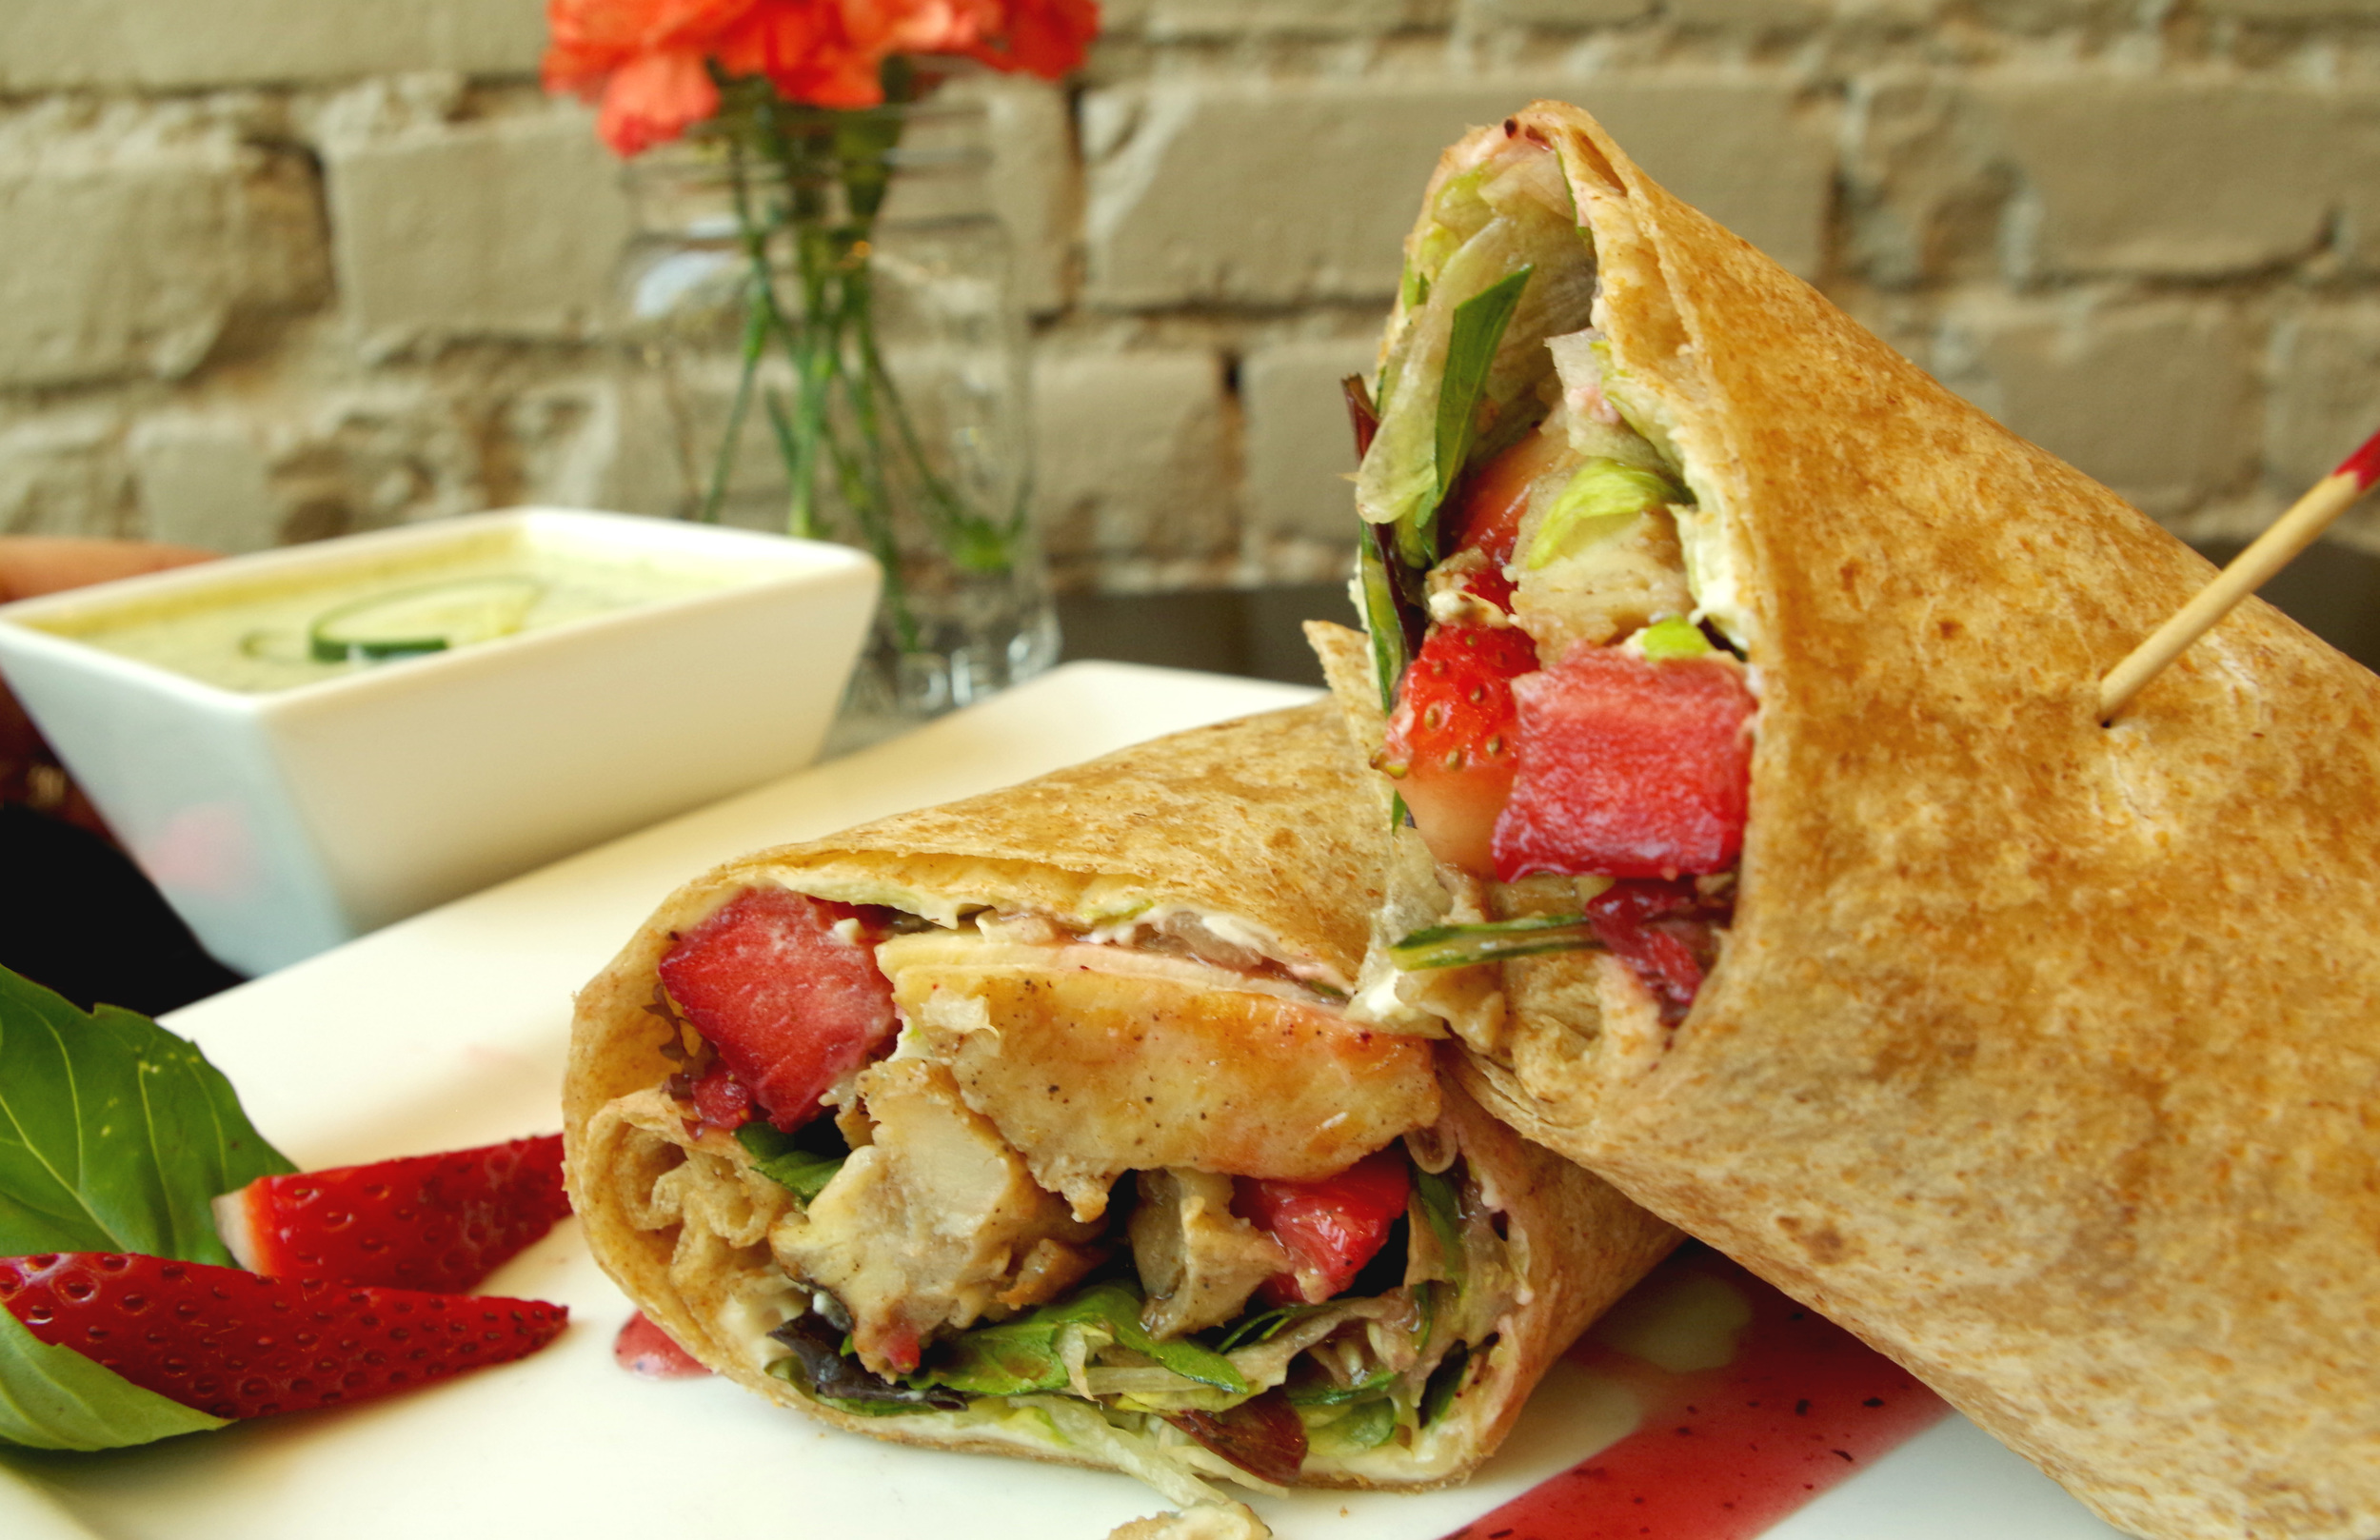 Strawberry Basil Wrap & Cold Cucumber Soup